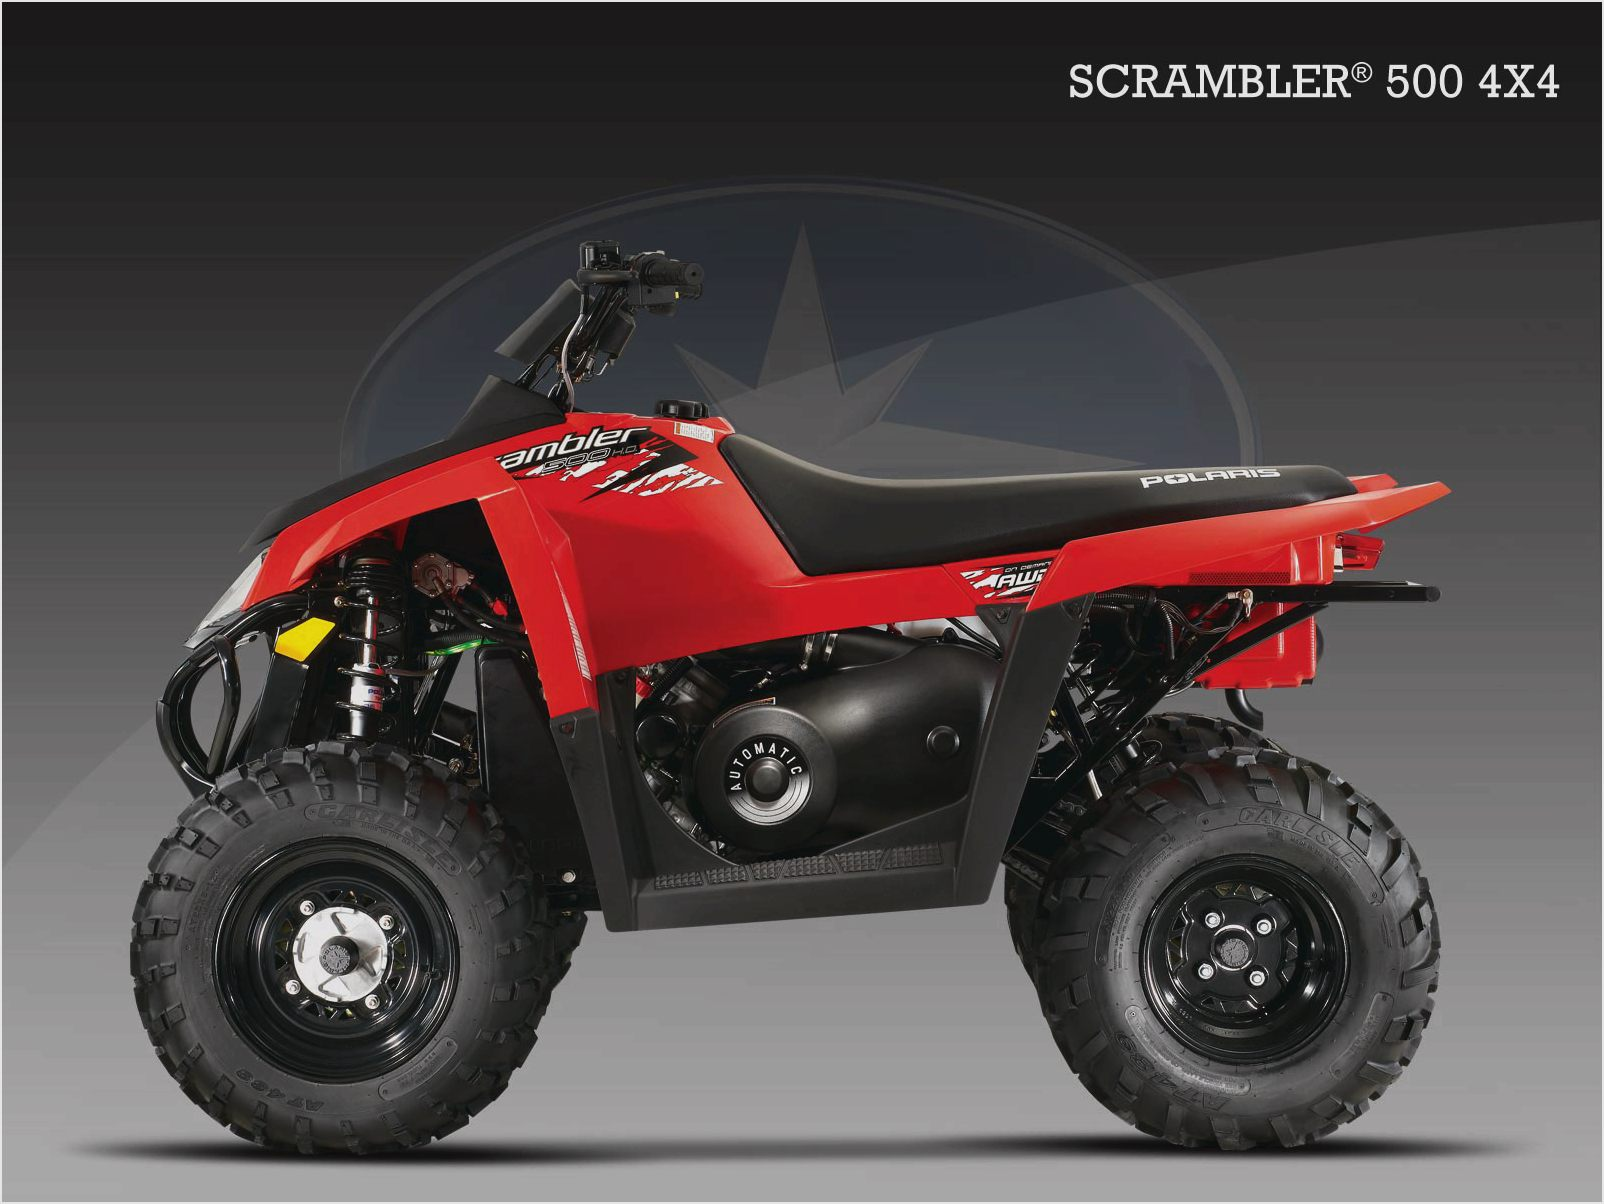 Polaris Scrambler 500 4x4 2006 images #121176